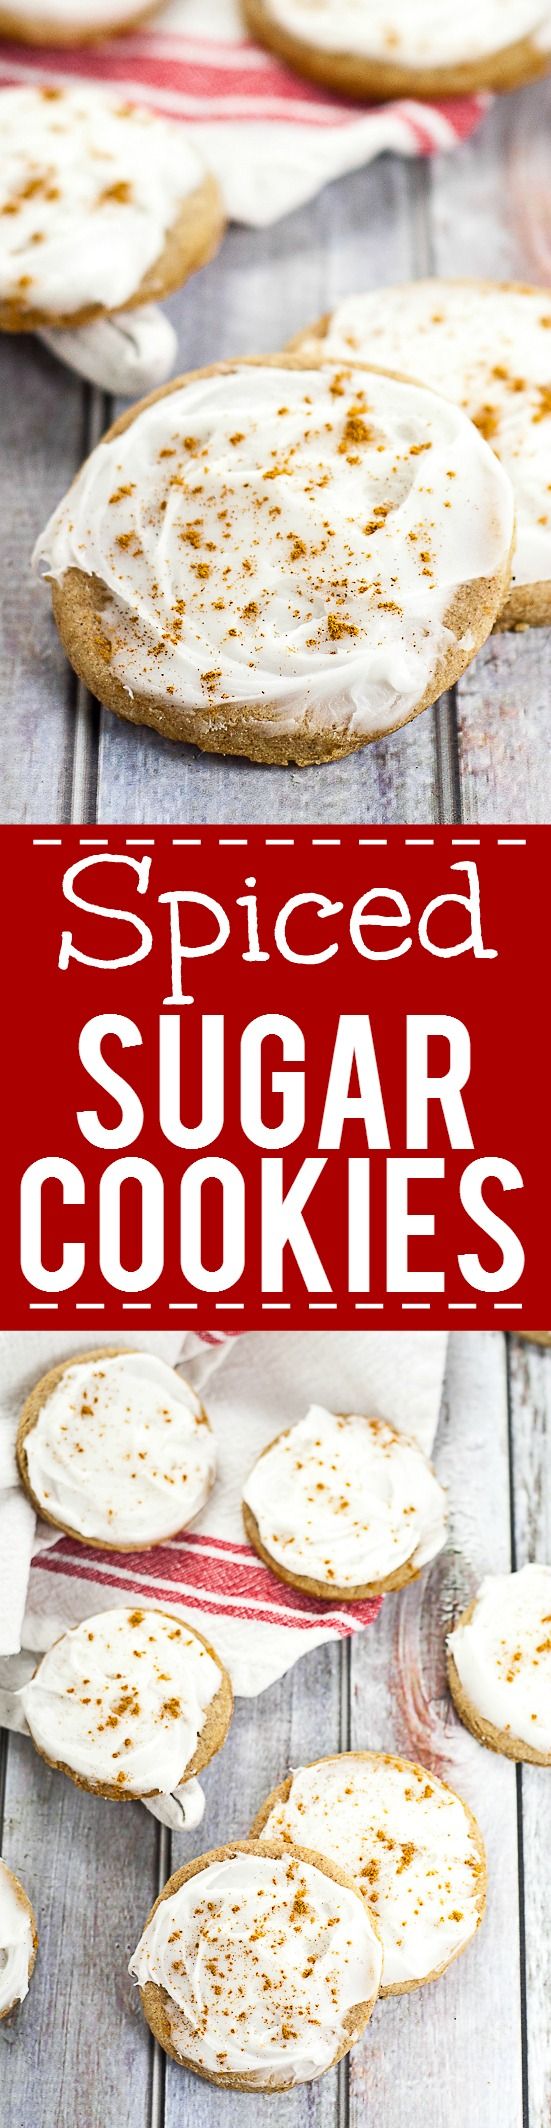 Spiced Sugar Cookies Recipe -Spiced Sugar Cookiesrecipe take your traditional sugar cookies and make them amazing with spicy cinnamon and nutmeg, topped with a creamy frosting and a sprinkle of cinnamon! These make such easy and yummy Christmas cookies! Perfect for a Christmas cookie exchange!